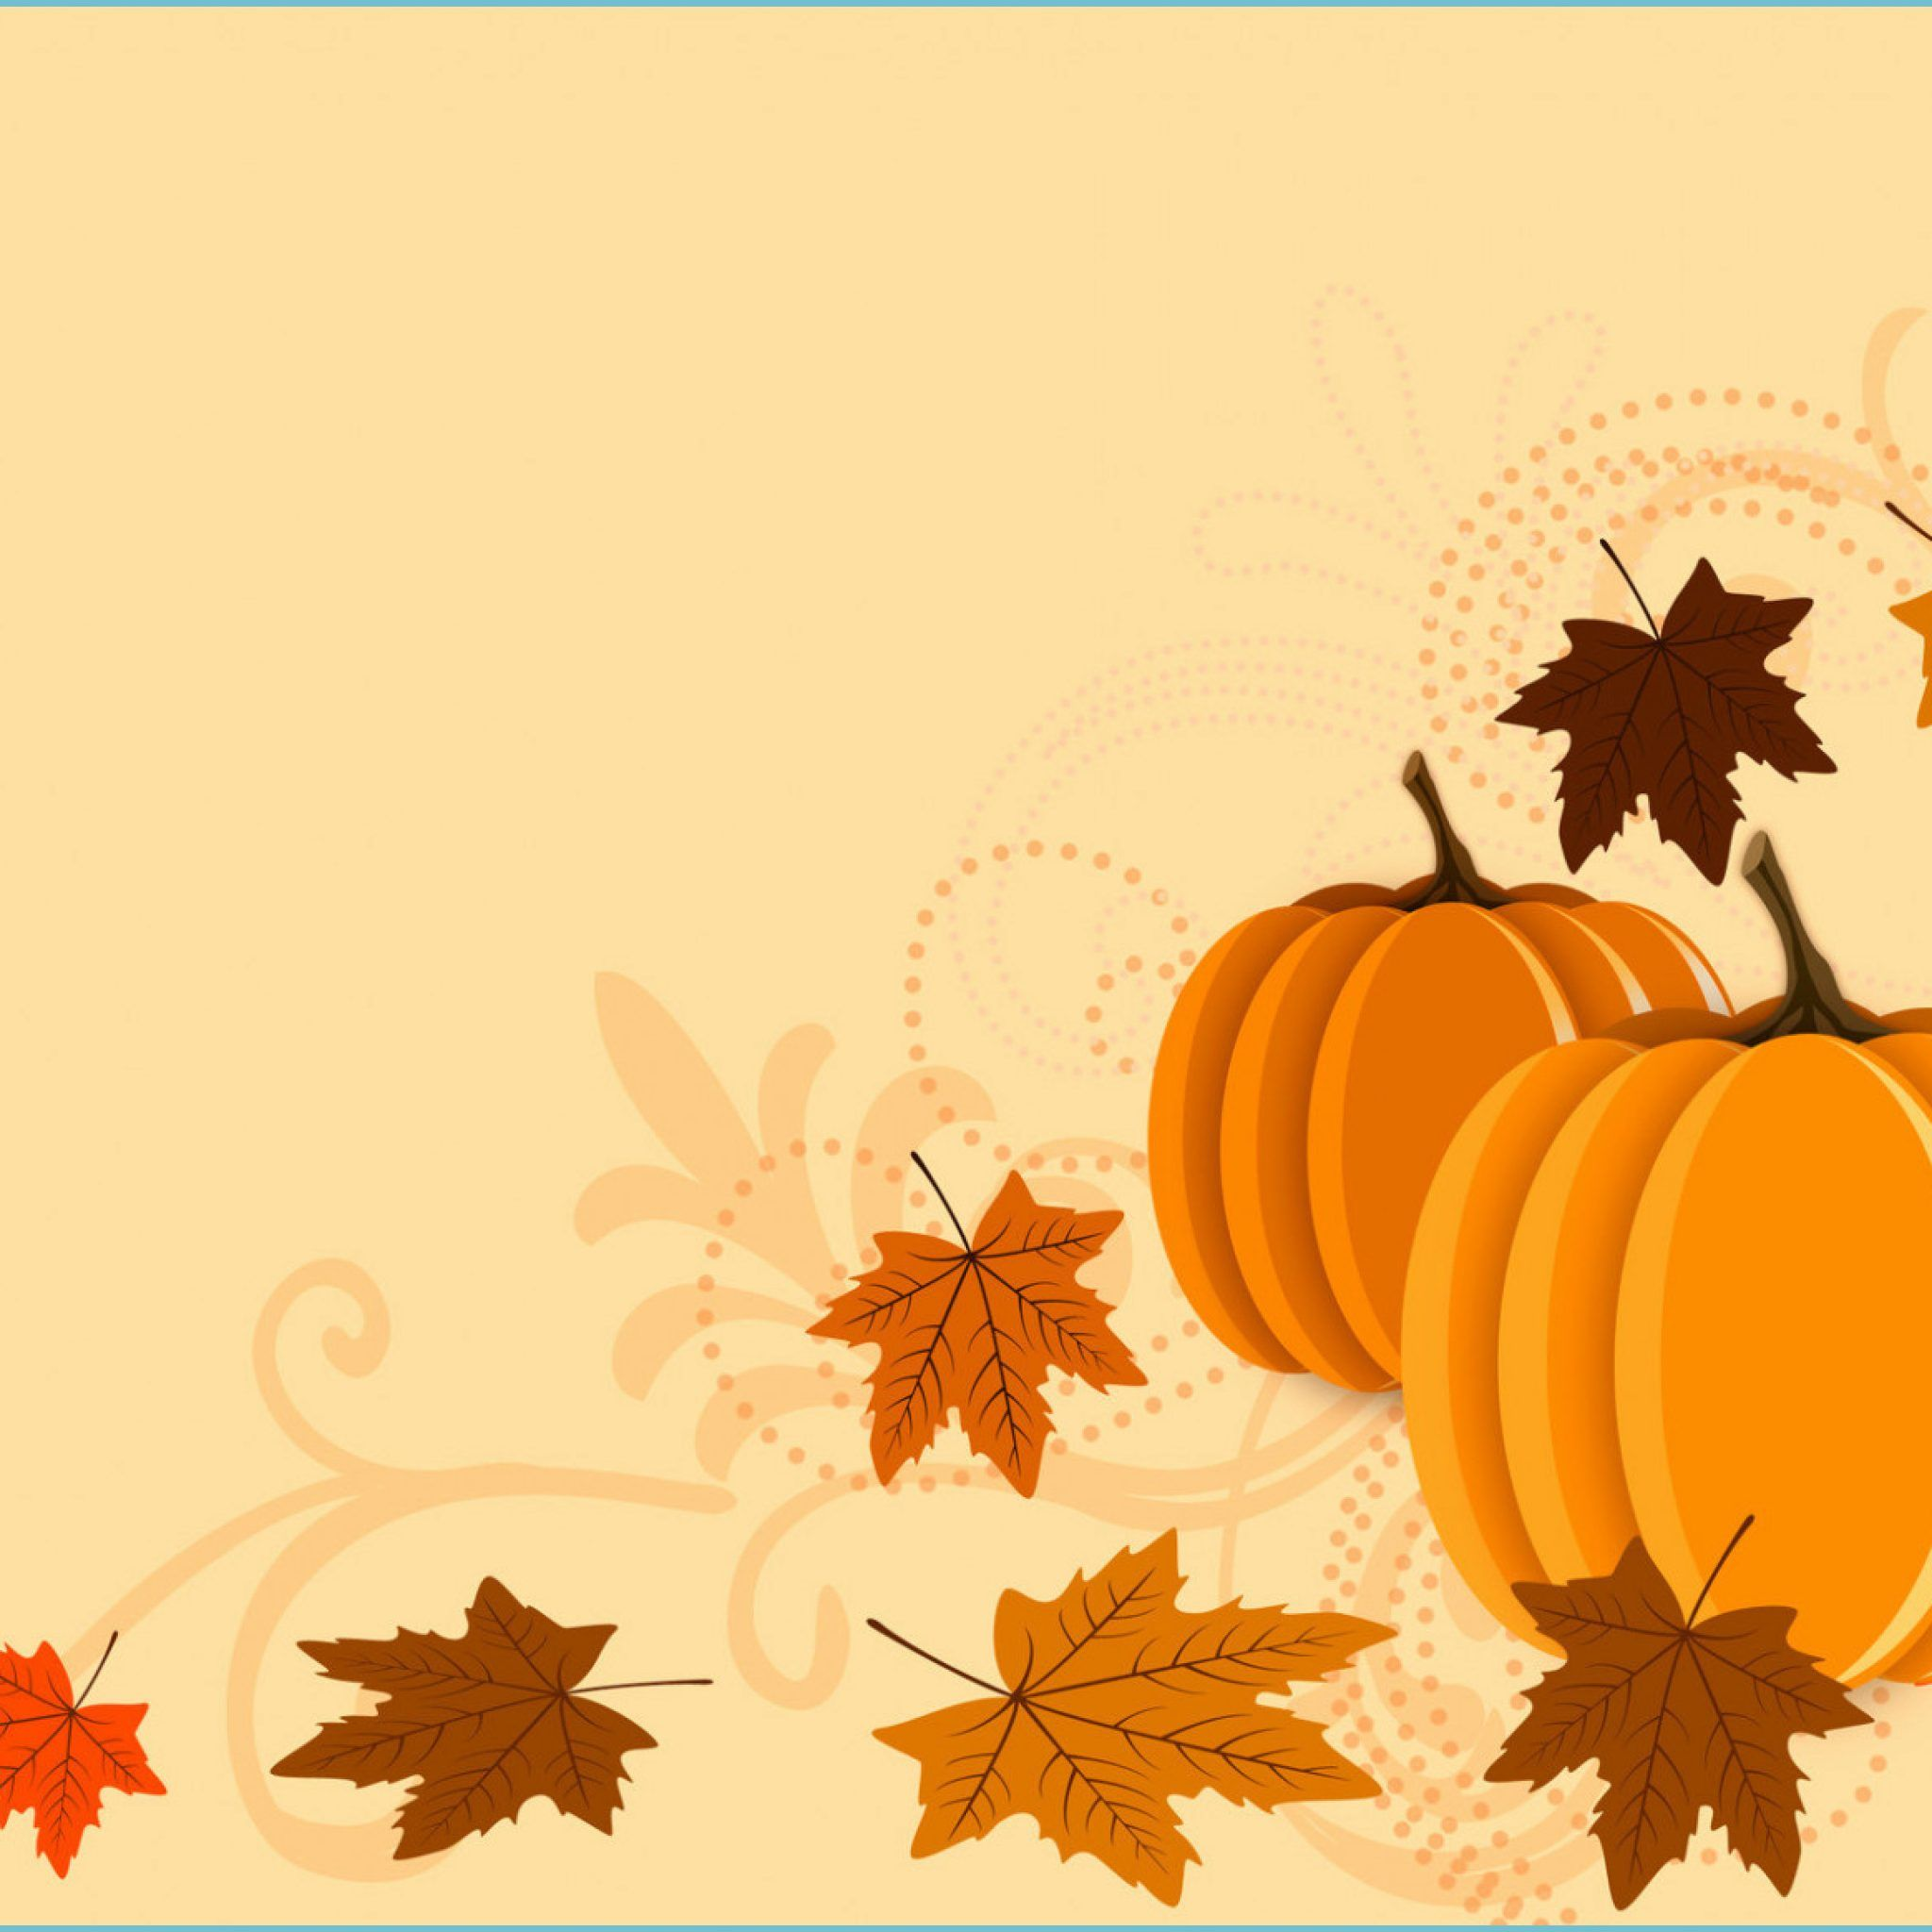 Free download 11 Desktop Thanksgiving Wallpapers